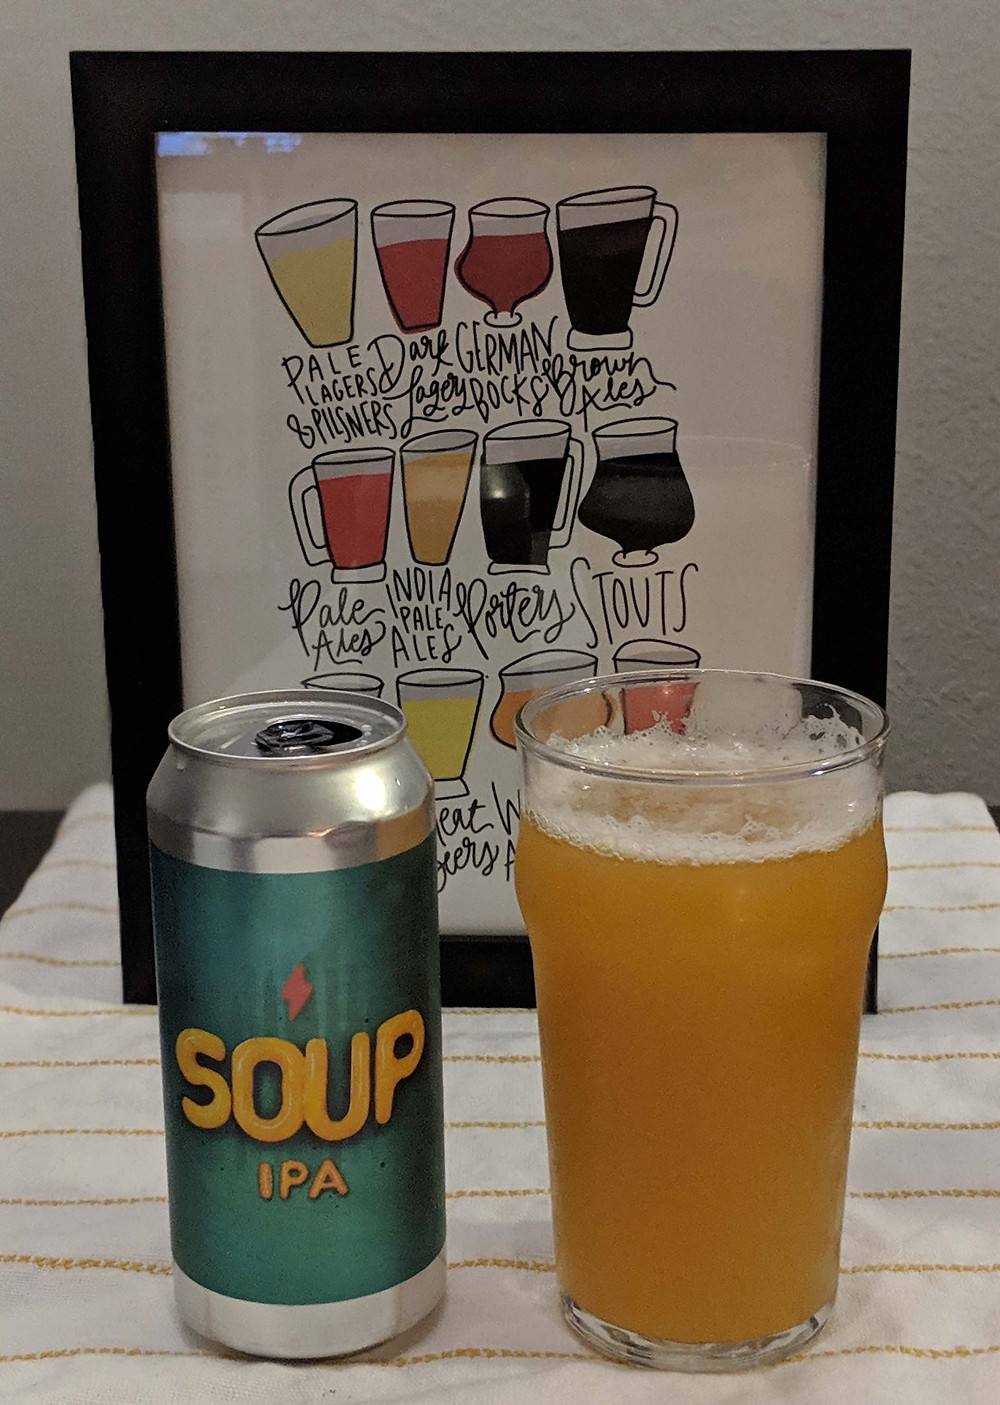 Soup IPA can next to beer glass